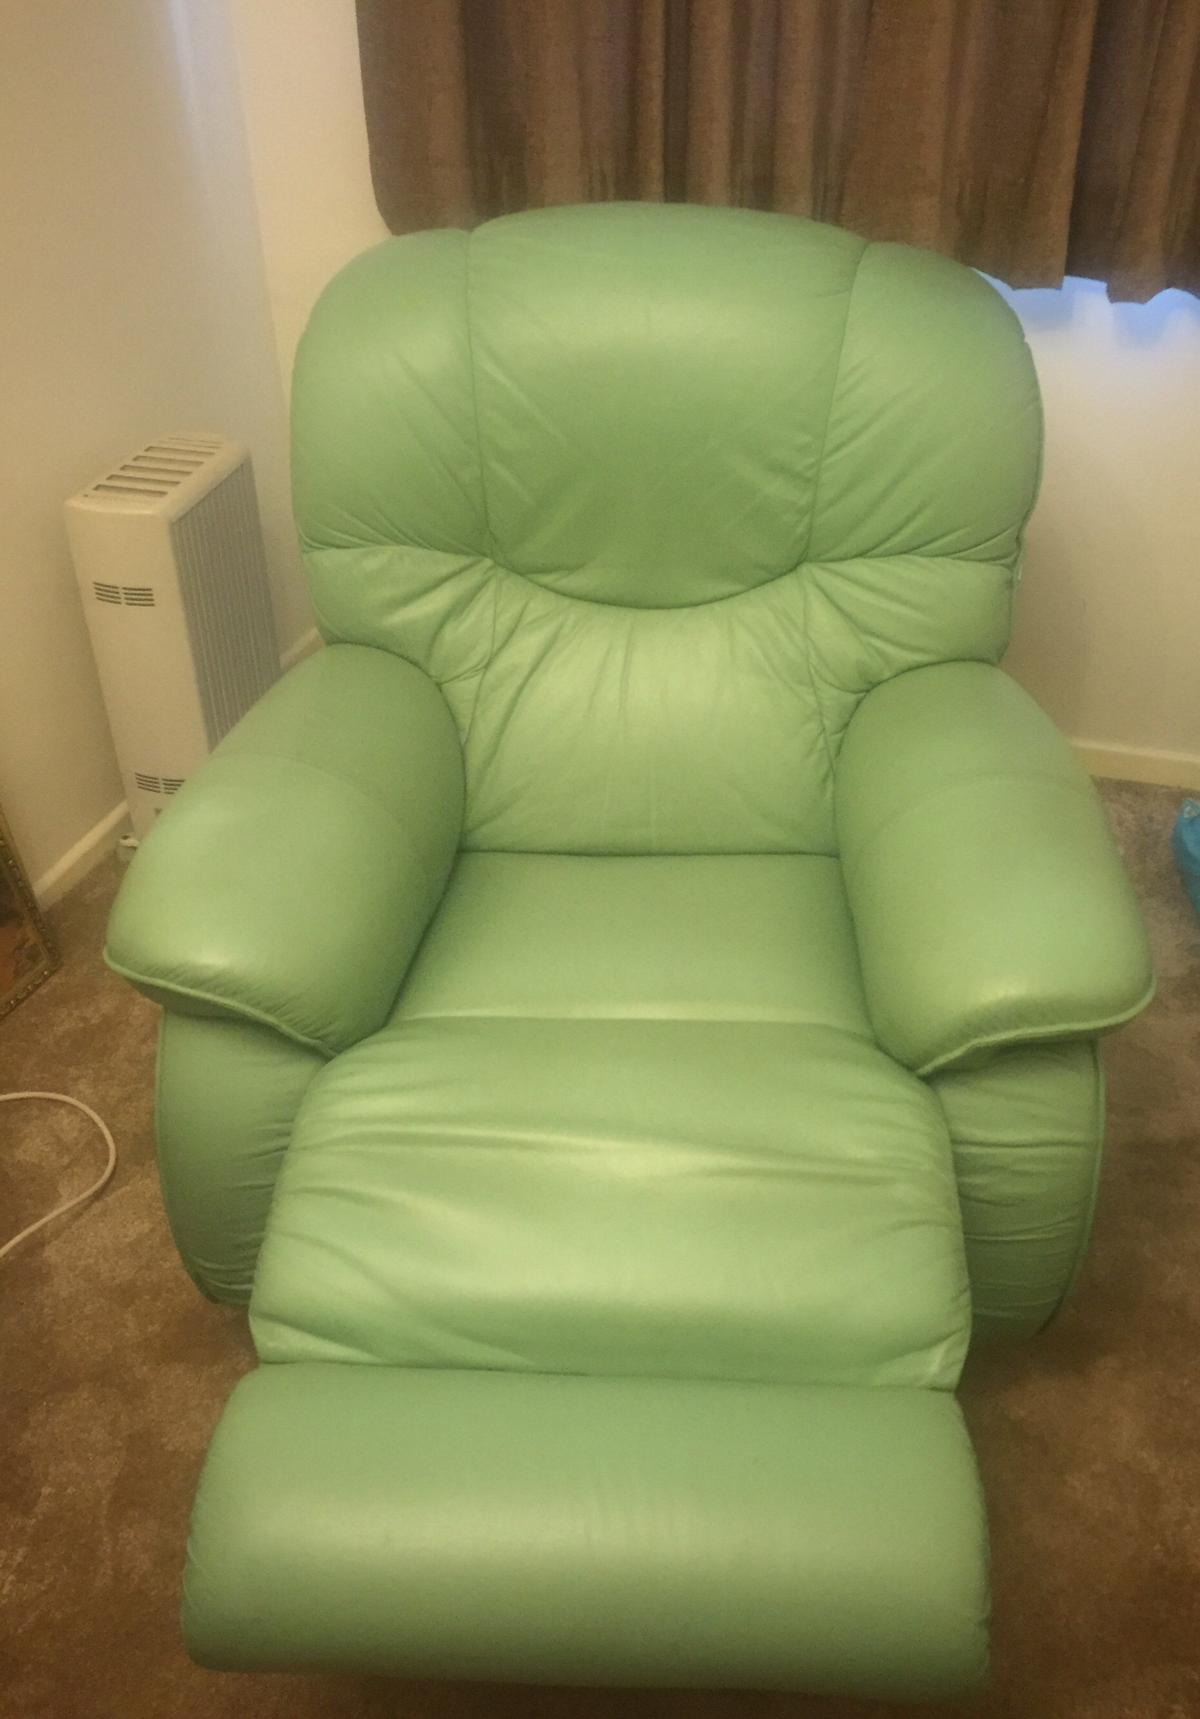 Picture of: Lazy Boy Green Recliner Swivel Leather Chair In Le65 Zouch For 10 00 For Sale Shpock